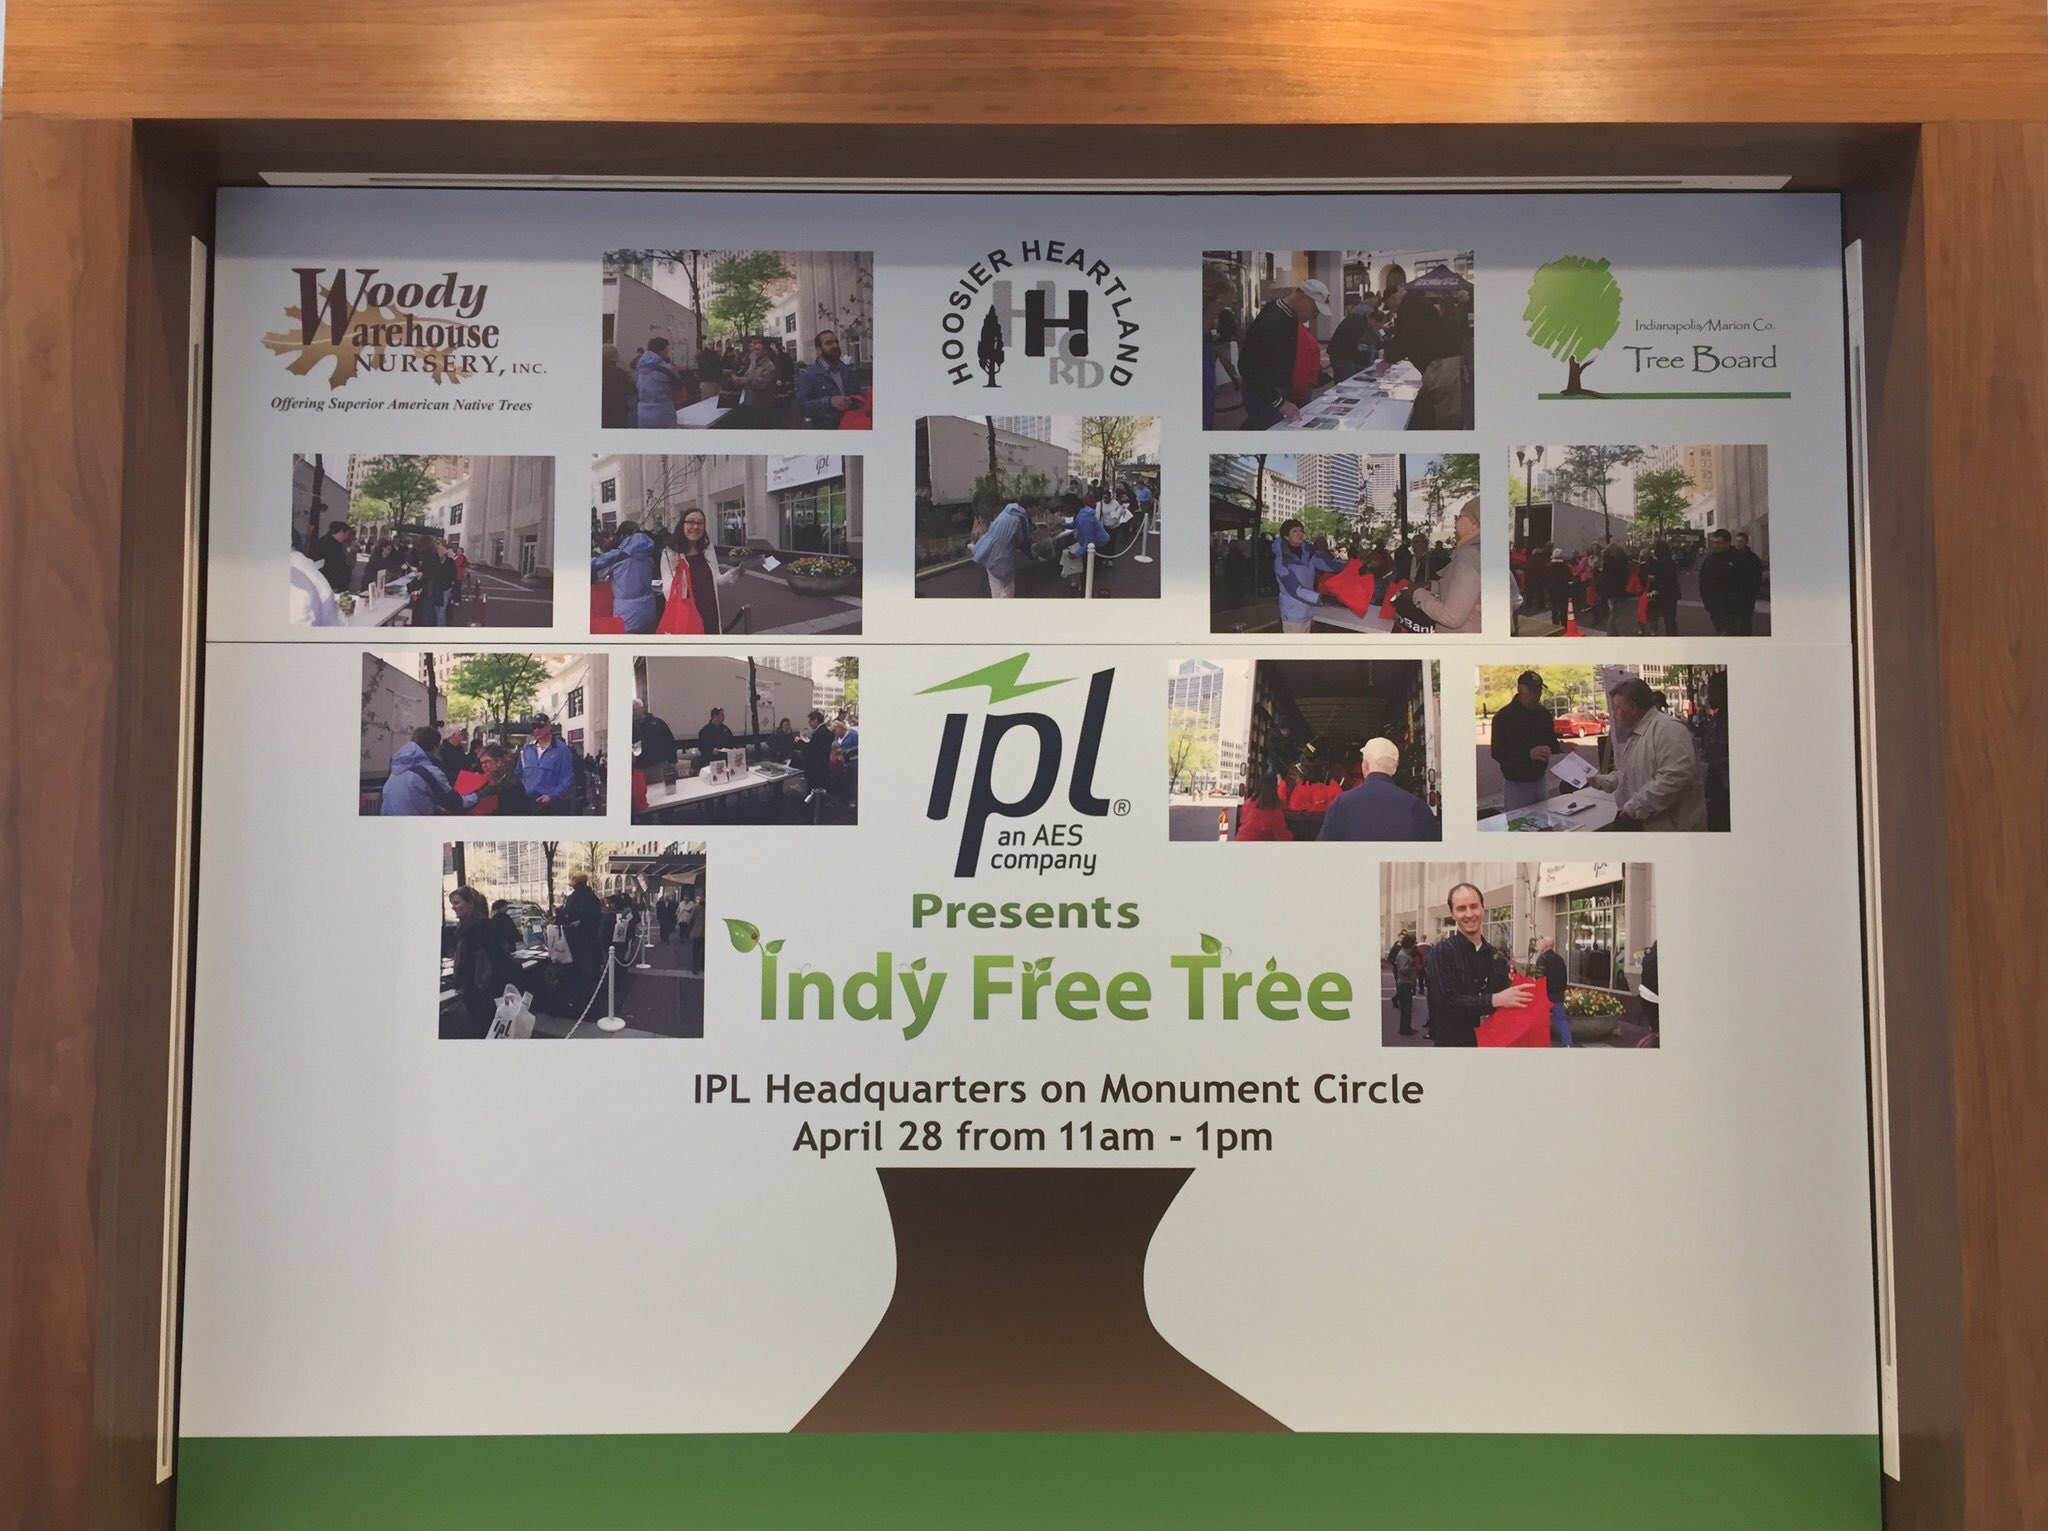 Ipl On Twitter Mark Your Calendars For The Annual Indyfreetree Event This Friday 1 000 White Spruce Trees Will Be Given Away Free